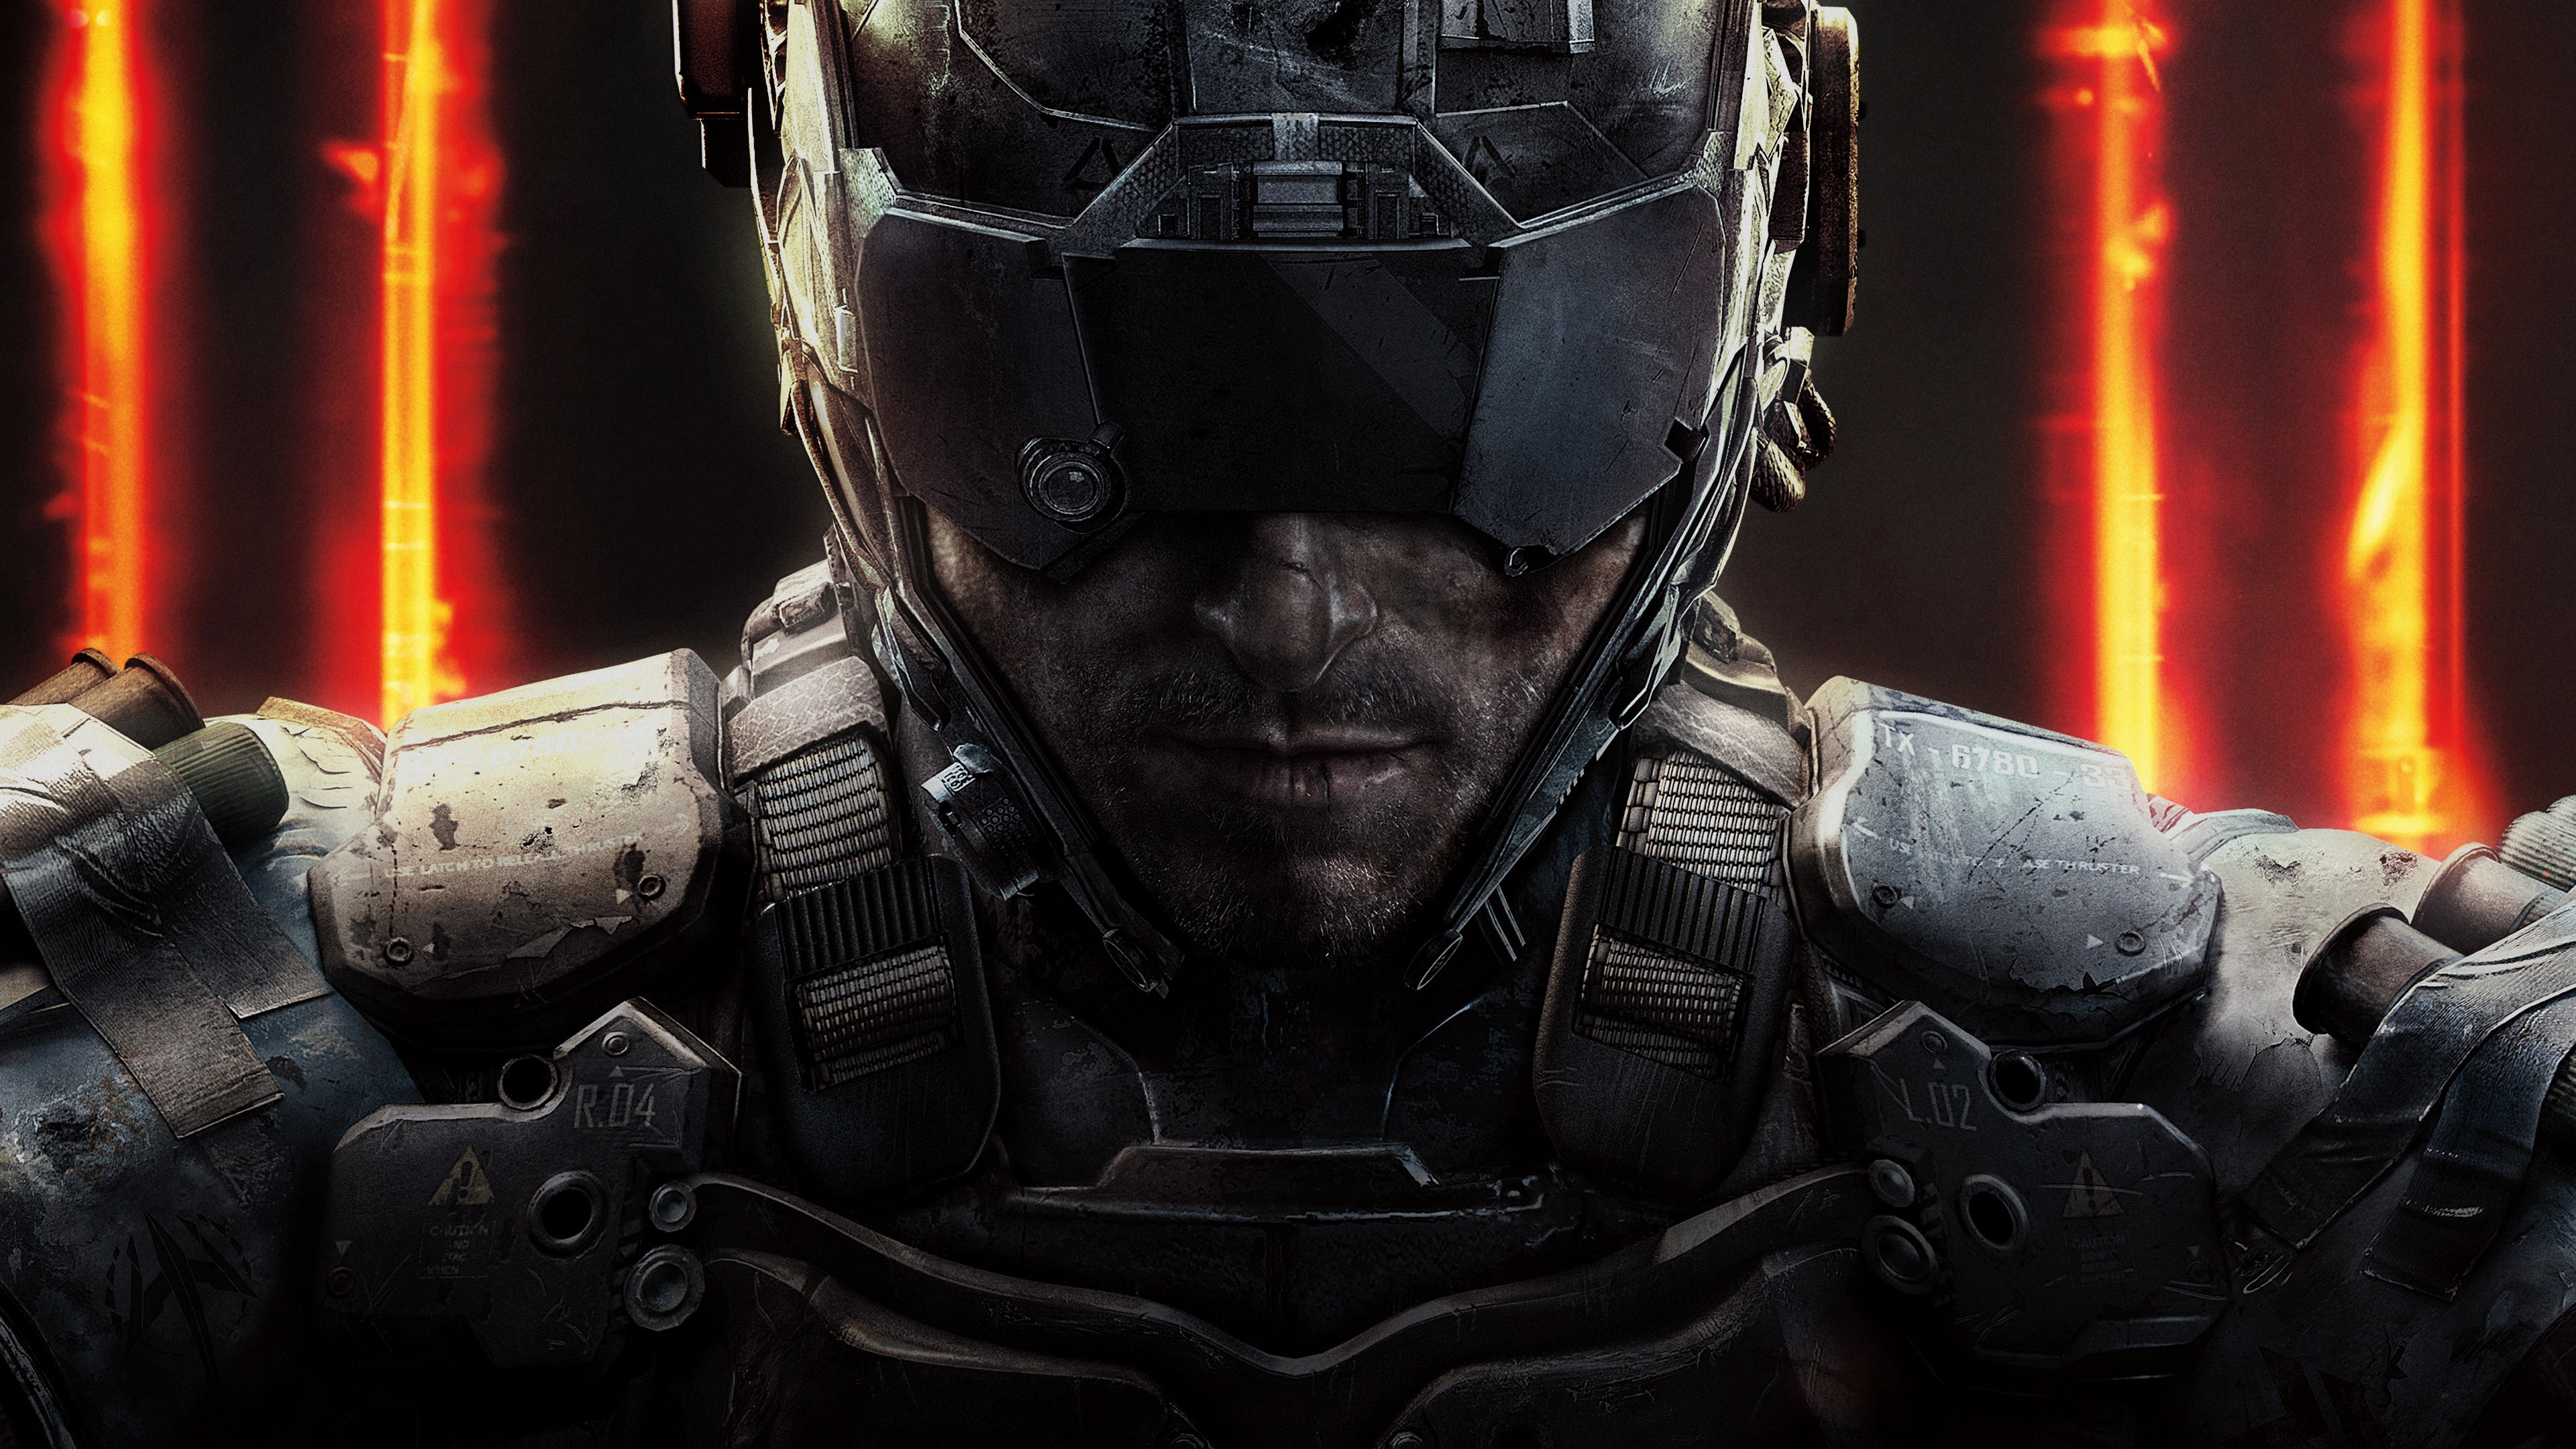 Black Ops 3 Wallpaper Download Free Beautiful Wallpapers For